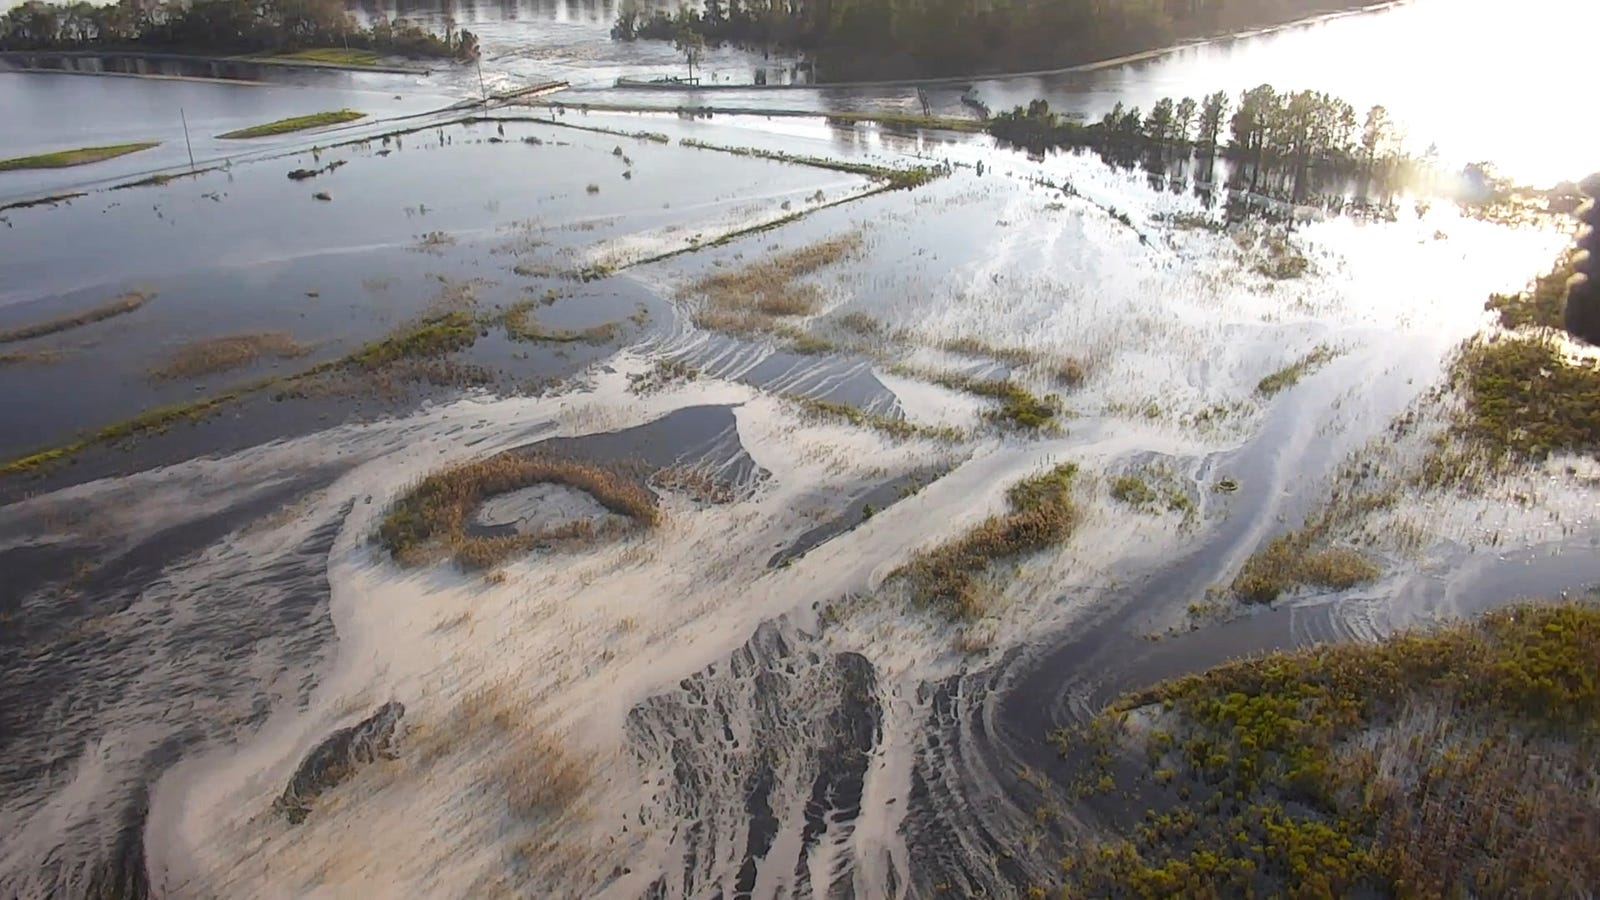 A Year After Hurricane Florence, Coal Ash Is Still a Huge Concern For North Carolina